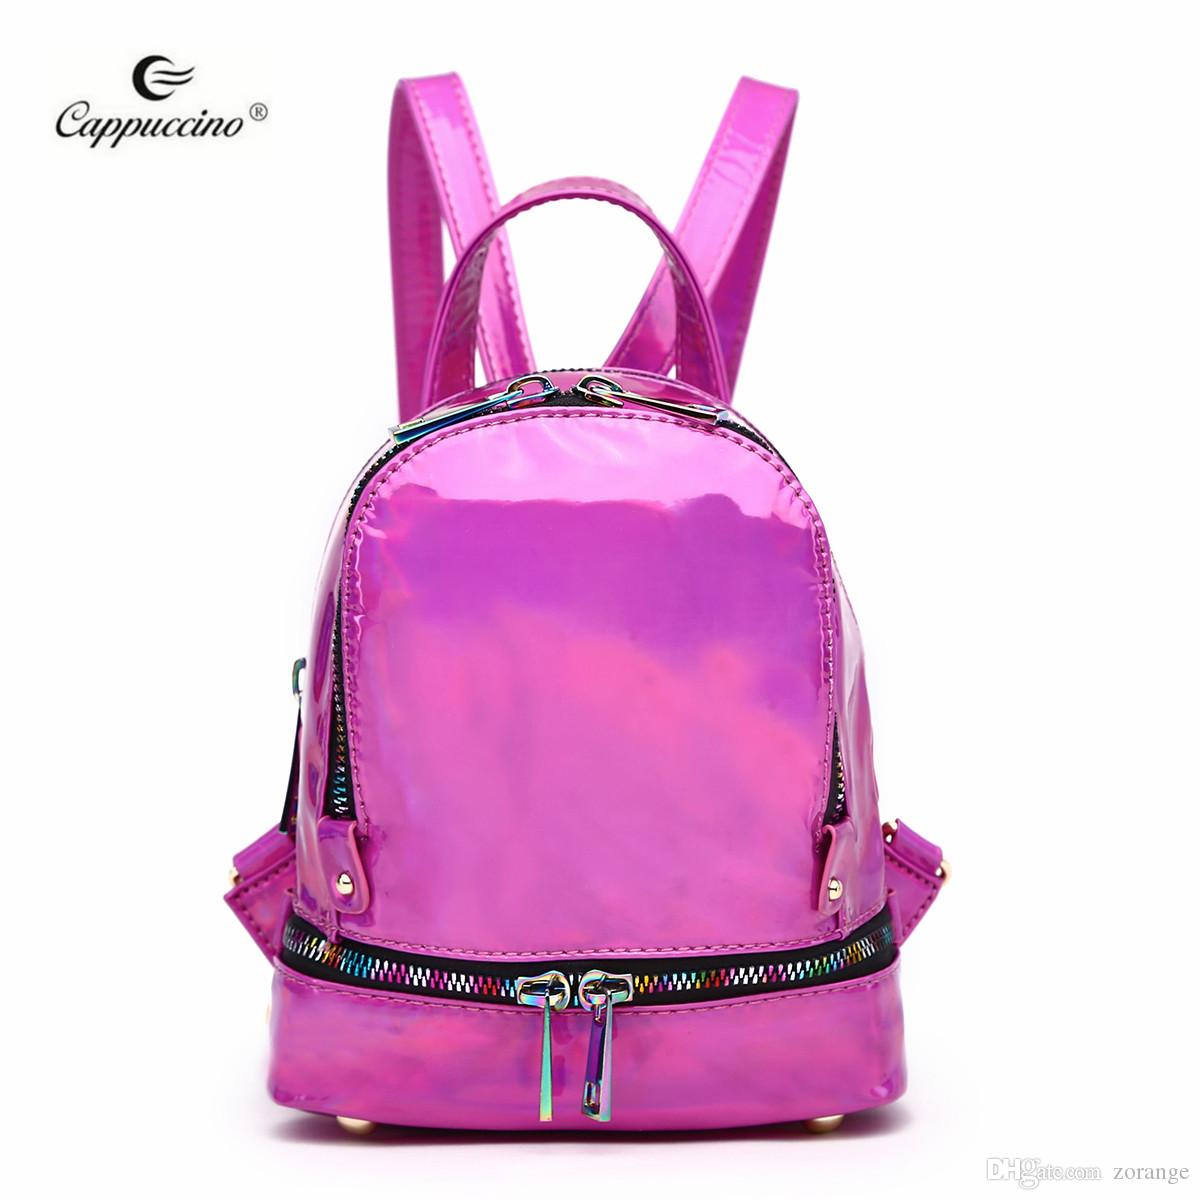 468cb8b3fbf4 2018 Hot Selling Cappuccino New Stylish Products Mini Hologram Deep Pink  Backpack With Rainbow Zipper Waterproof Backpack Kids Backpacks From  Zorange, ...